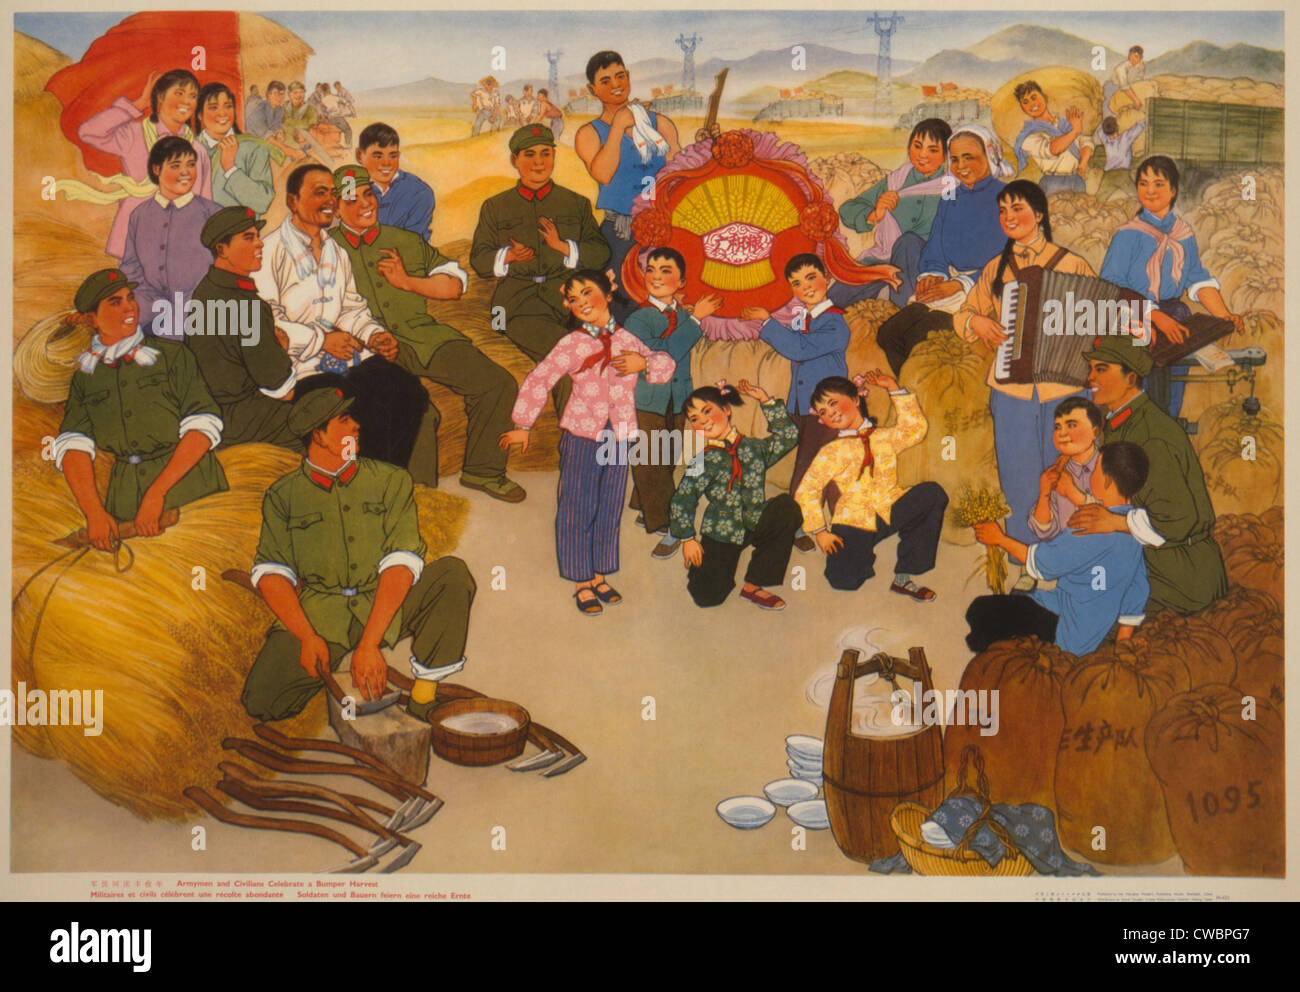 Chinese  Cultural Revolution poster of People's  Army men and civilians celebrating a bumper crop of grain. - Stock Image